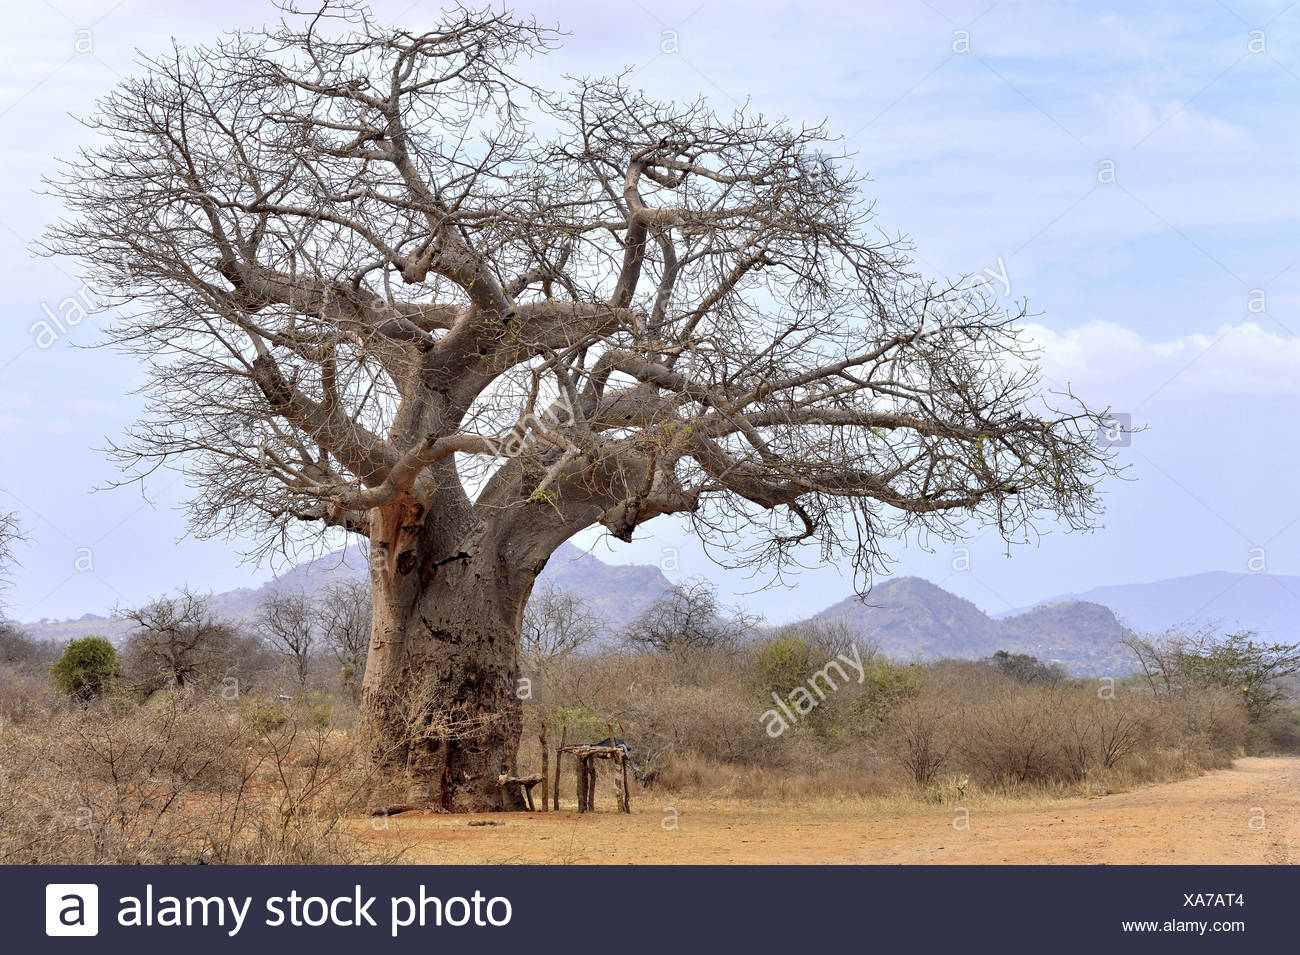 Baobab Tree in Africa - Stock Image